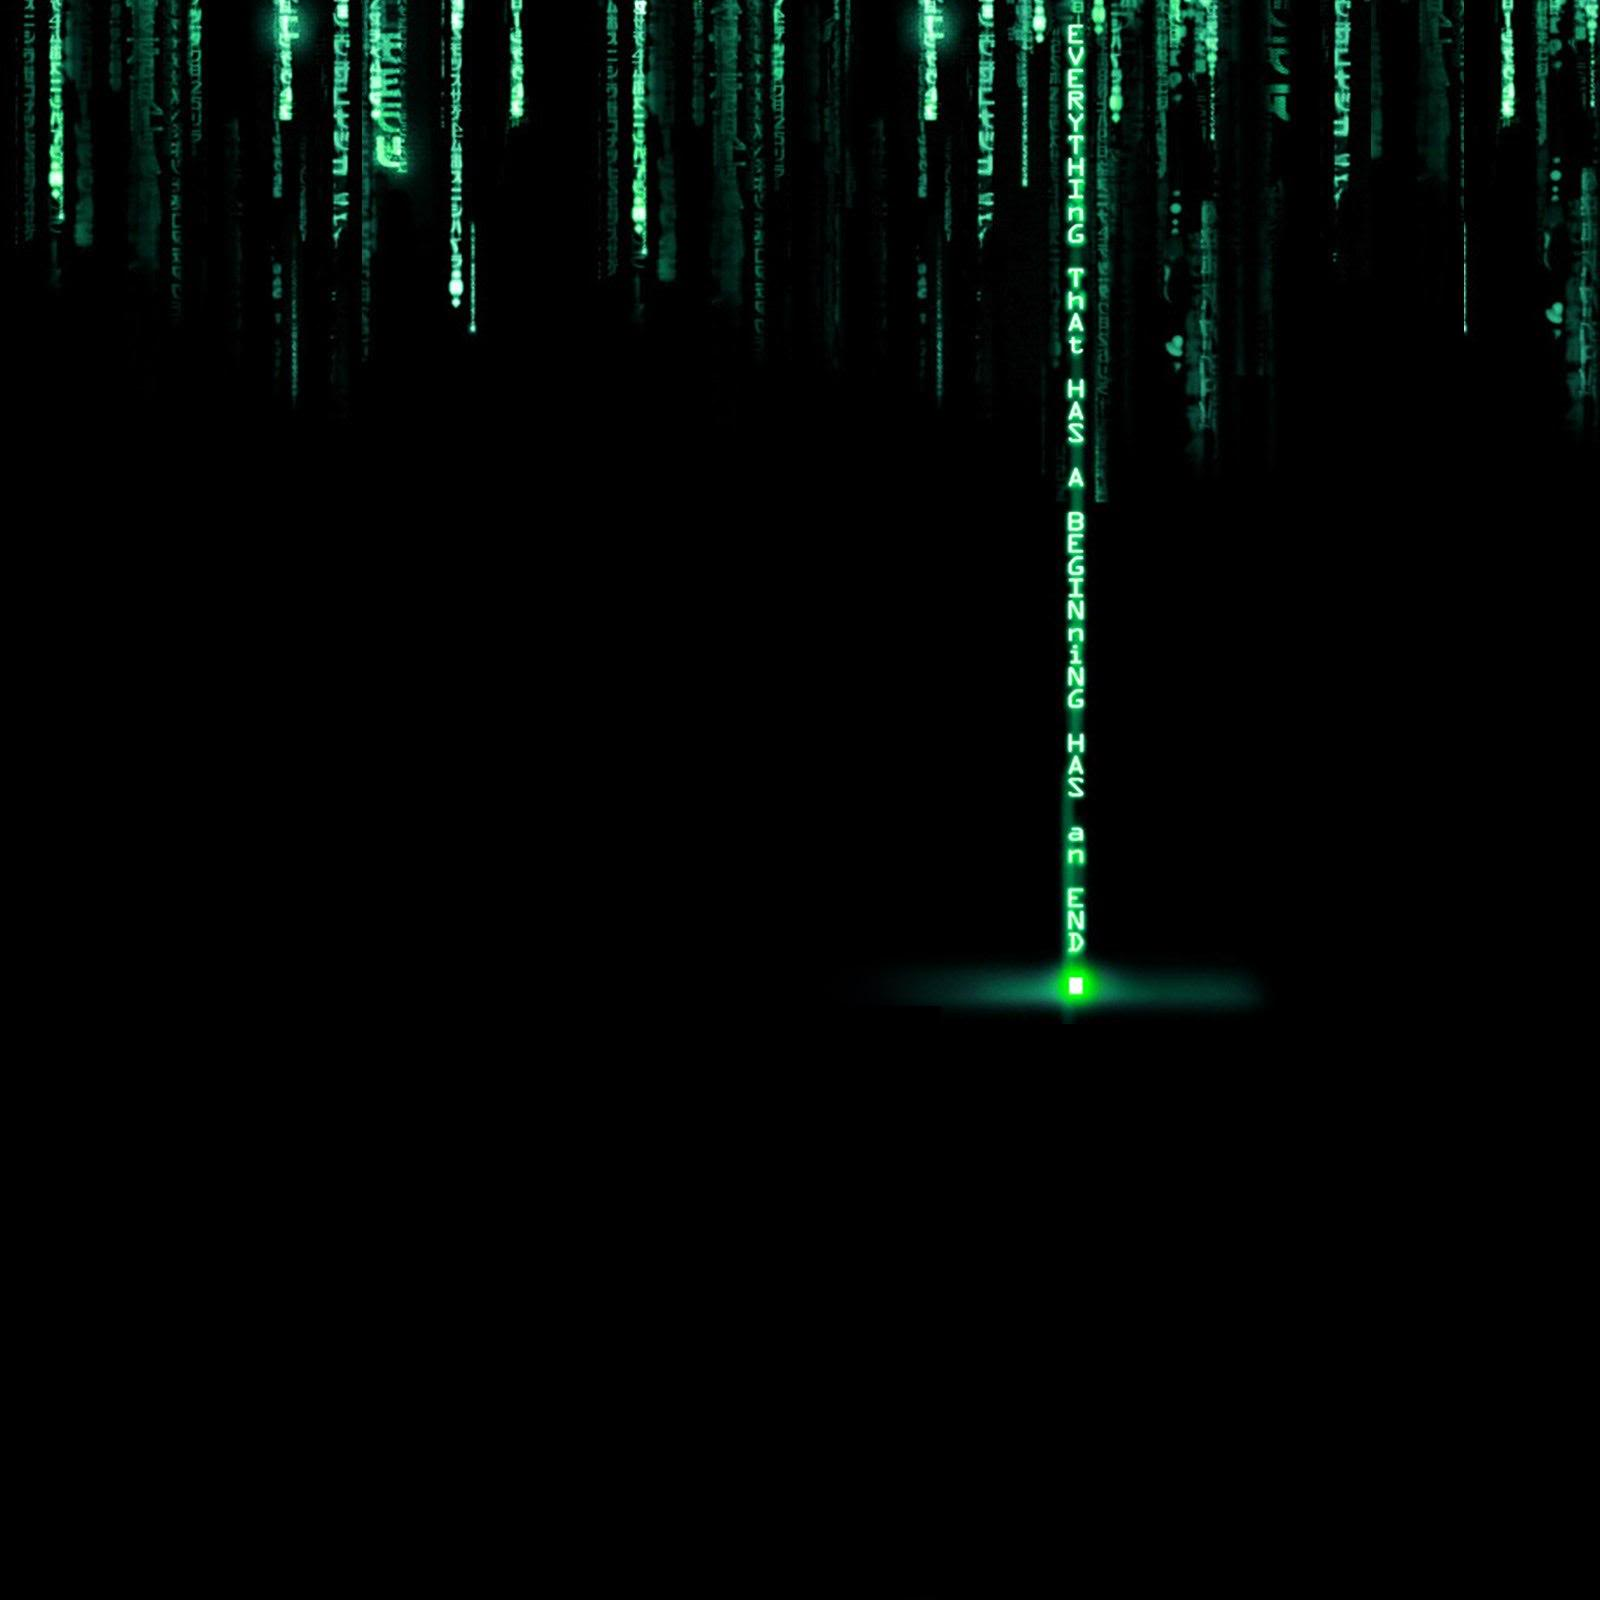 Animated Matrix Wallpaper - Animated Wallpaper Windows 7